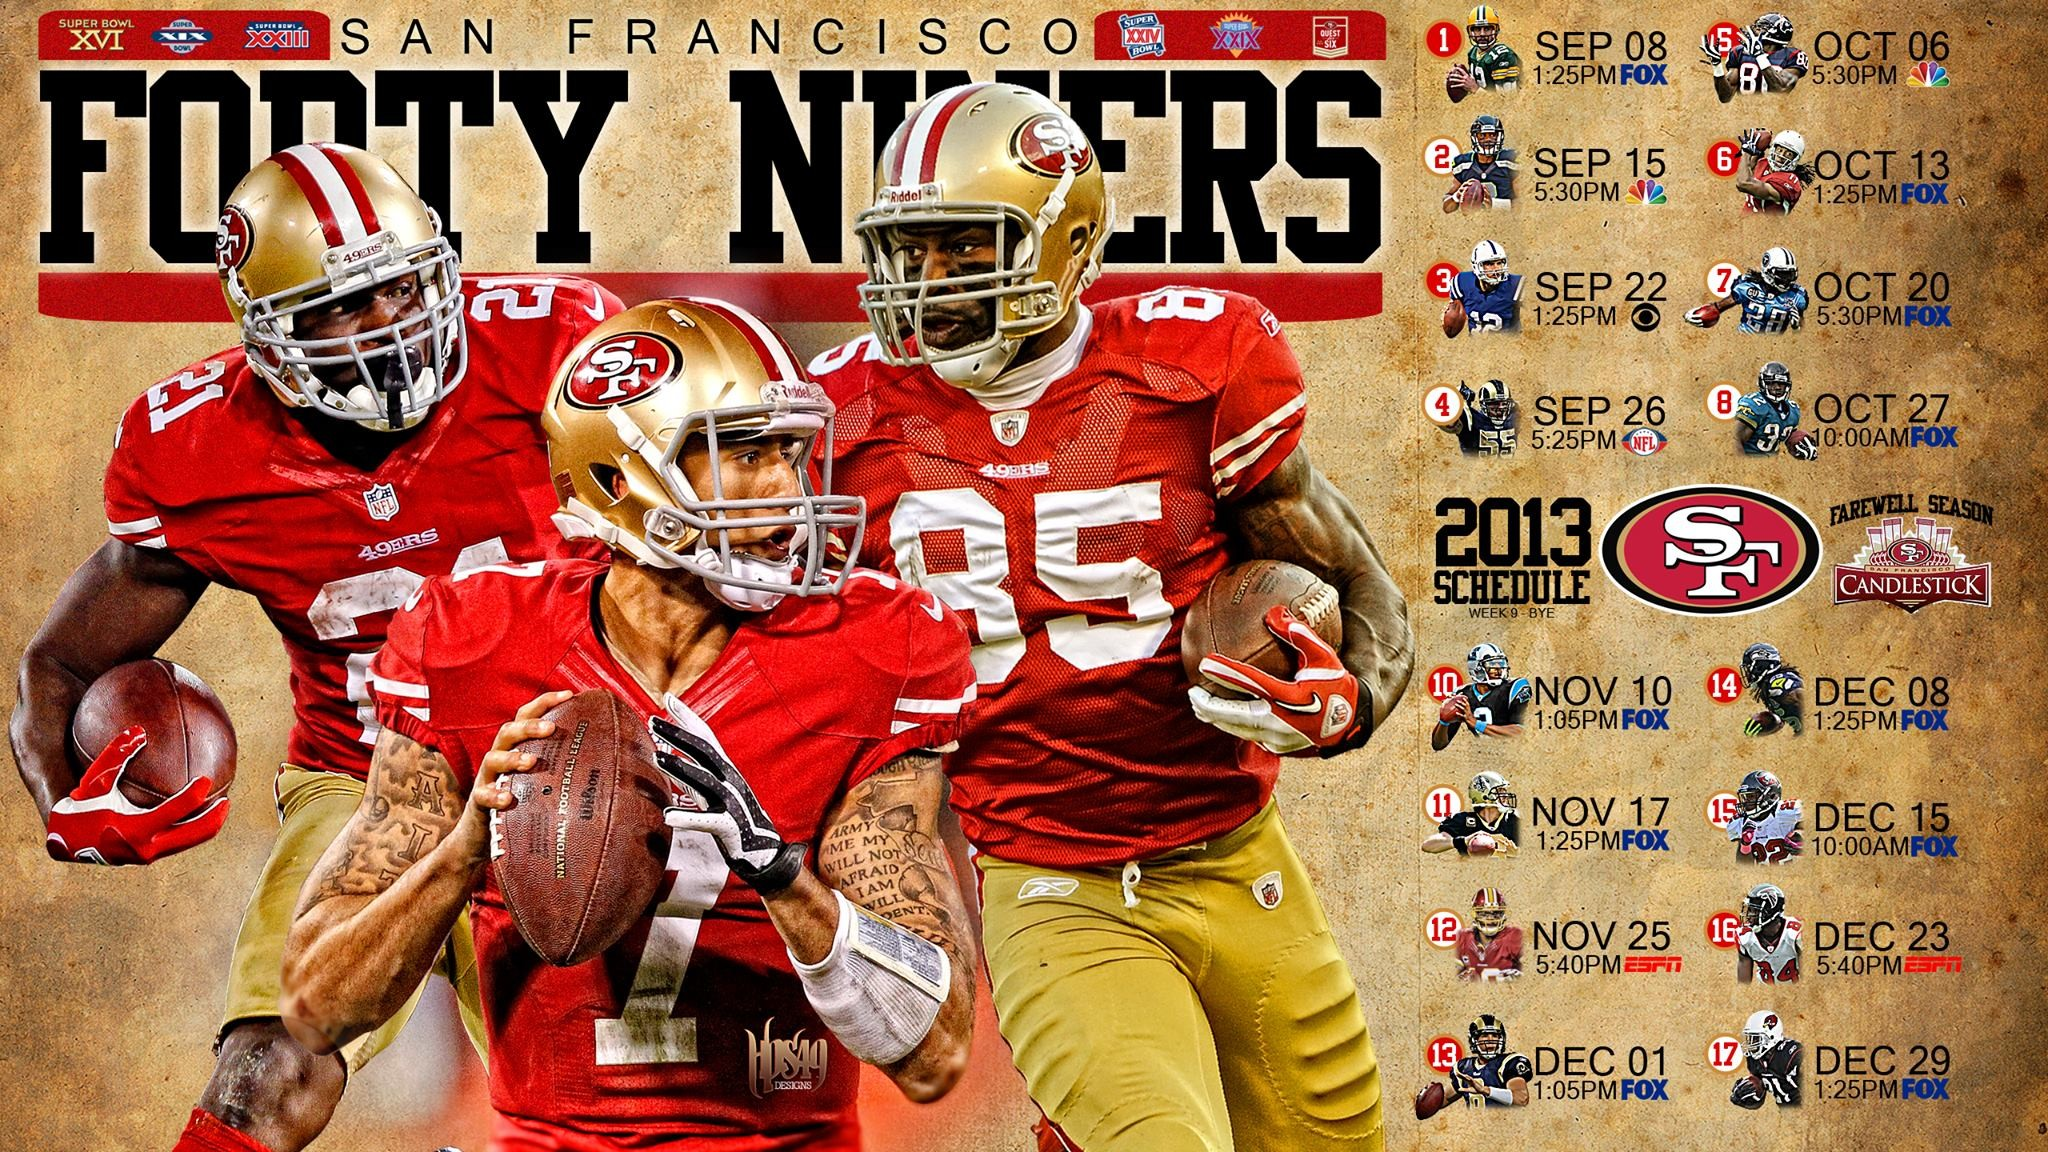 San francisco 49ers screensaver wallpaper 66 images 1920x1080 new 49ers wallpapers for desktop and mobile voltagebd Gallery